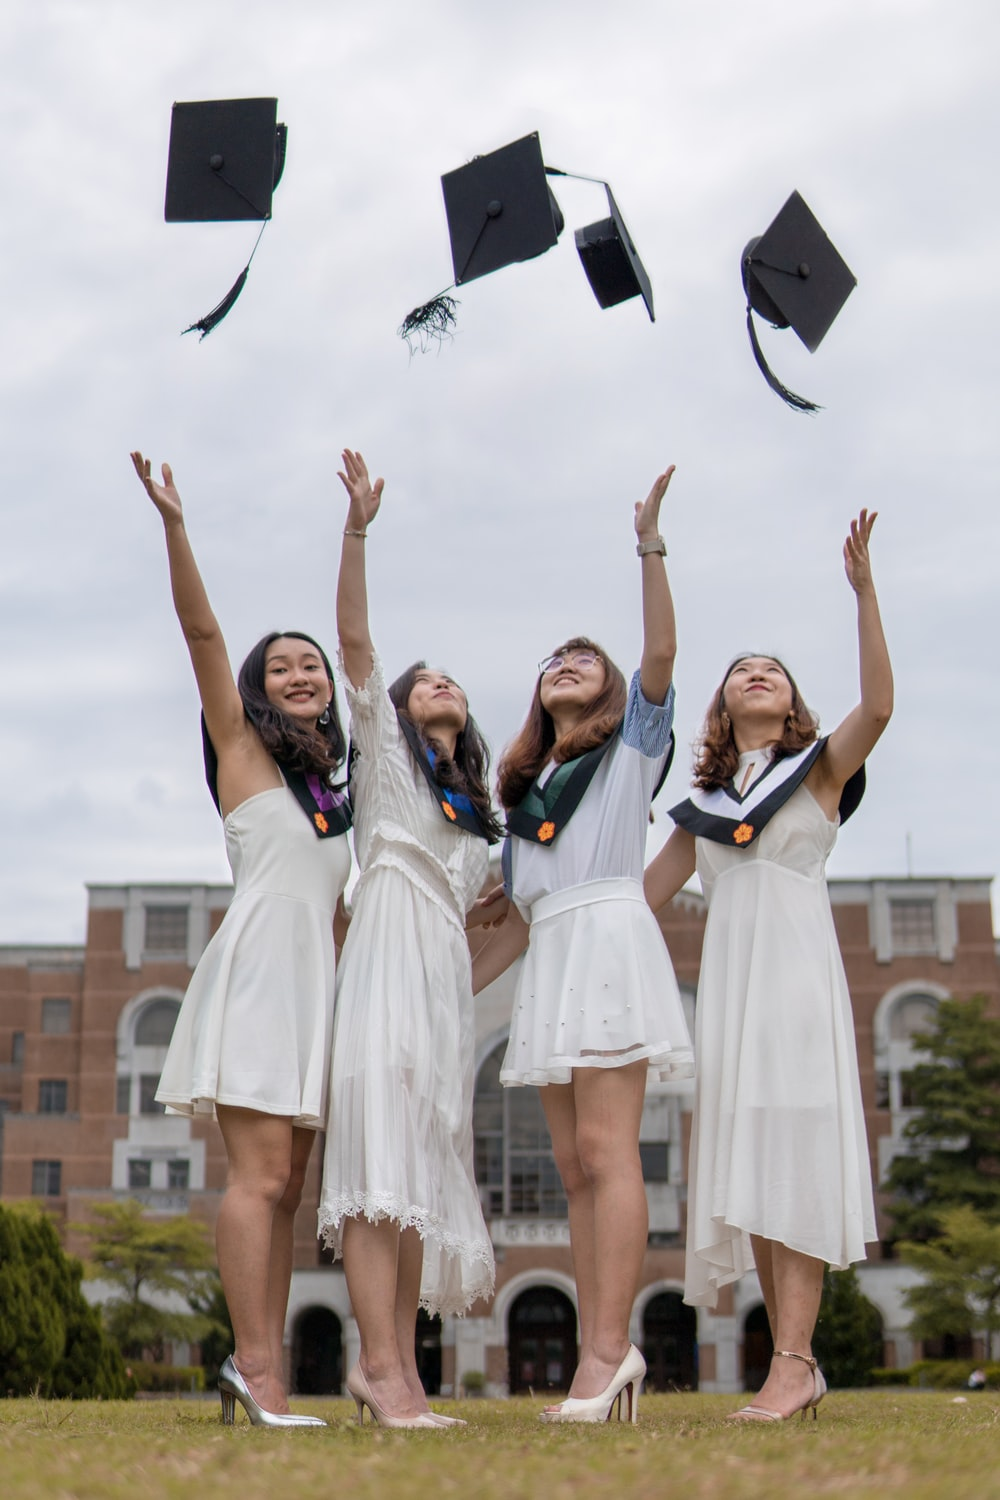 low-angle photography of four girls throwing mortar hat near outdoor during daytime